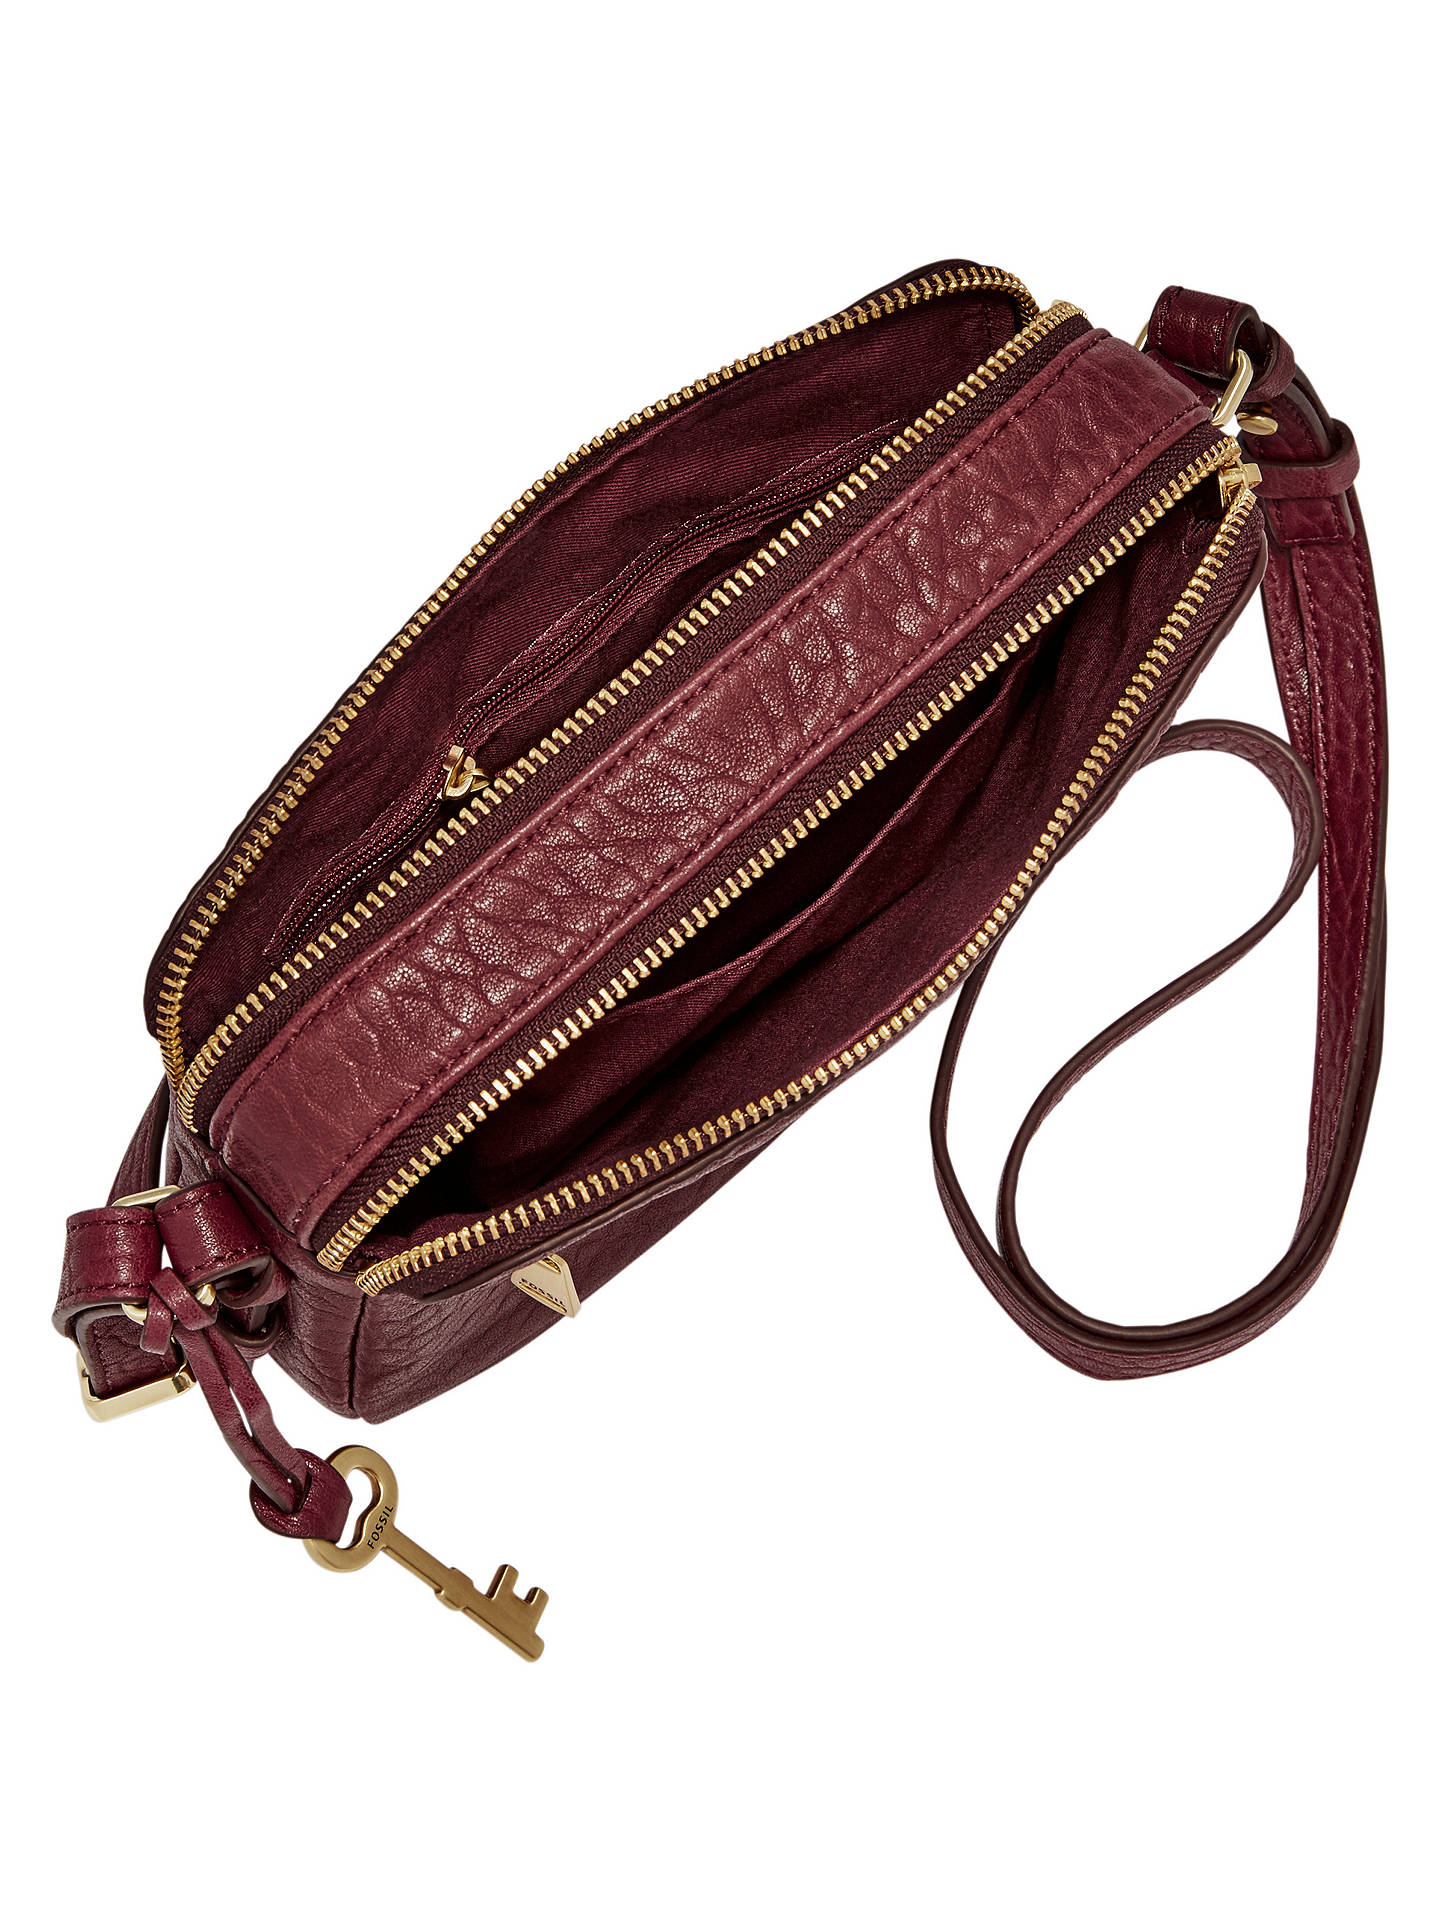 Fossil Piper Toaster Leather Across Body Bag Wine At John